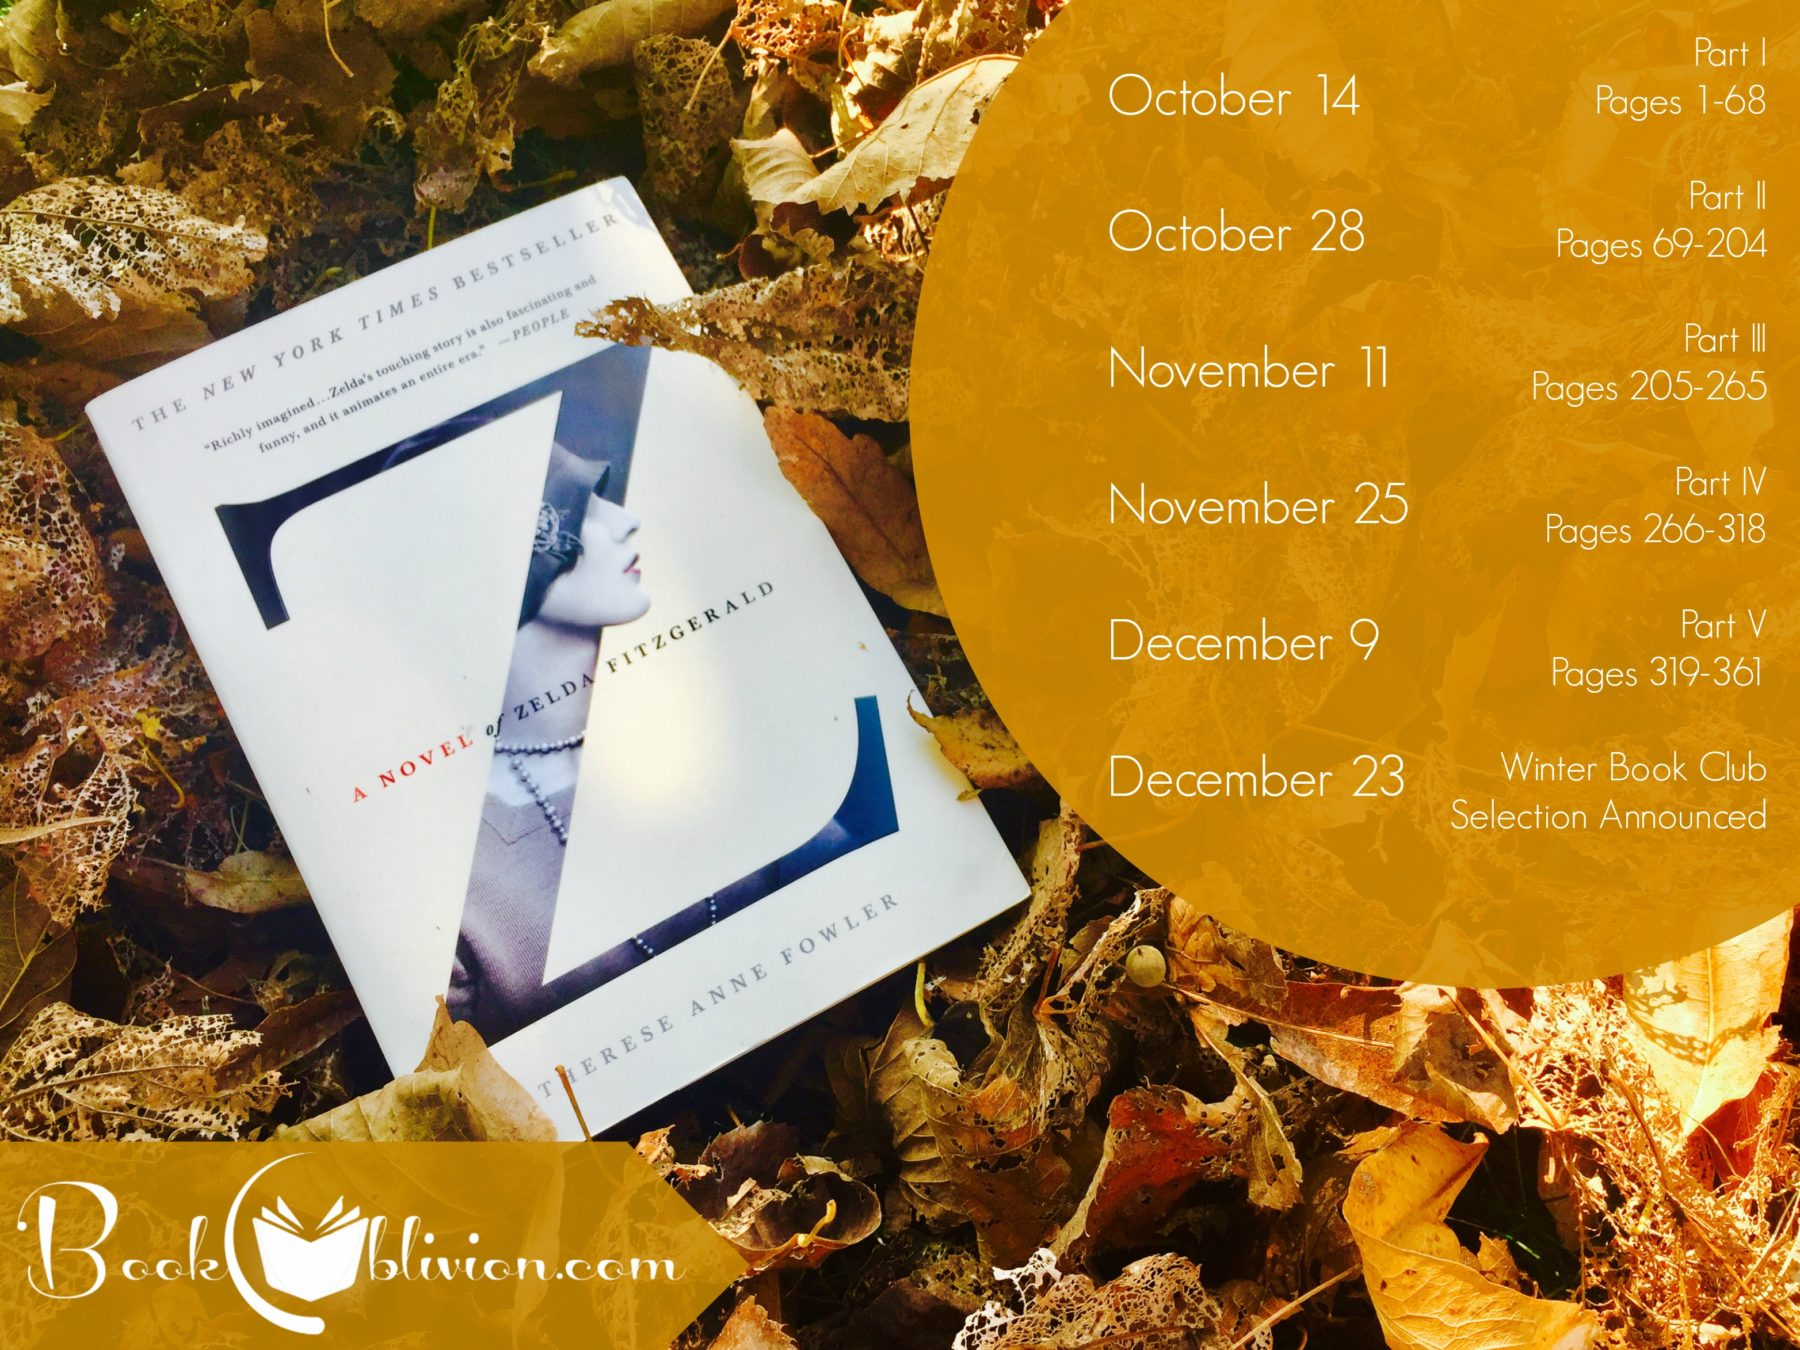 Fall Book Club Reading Schedule